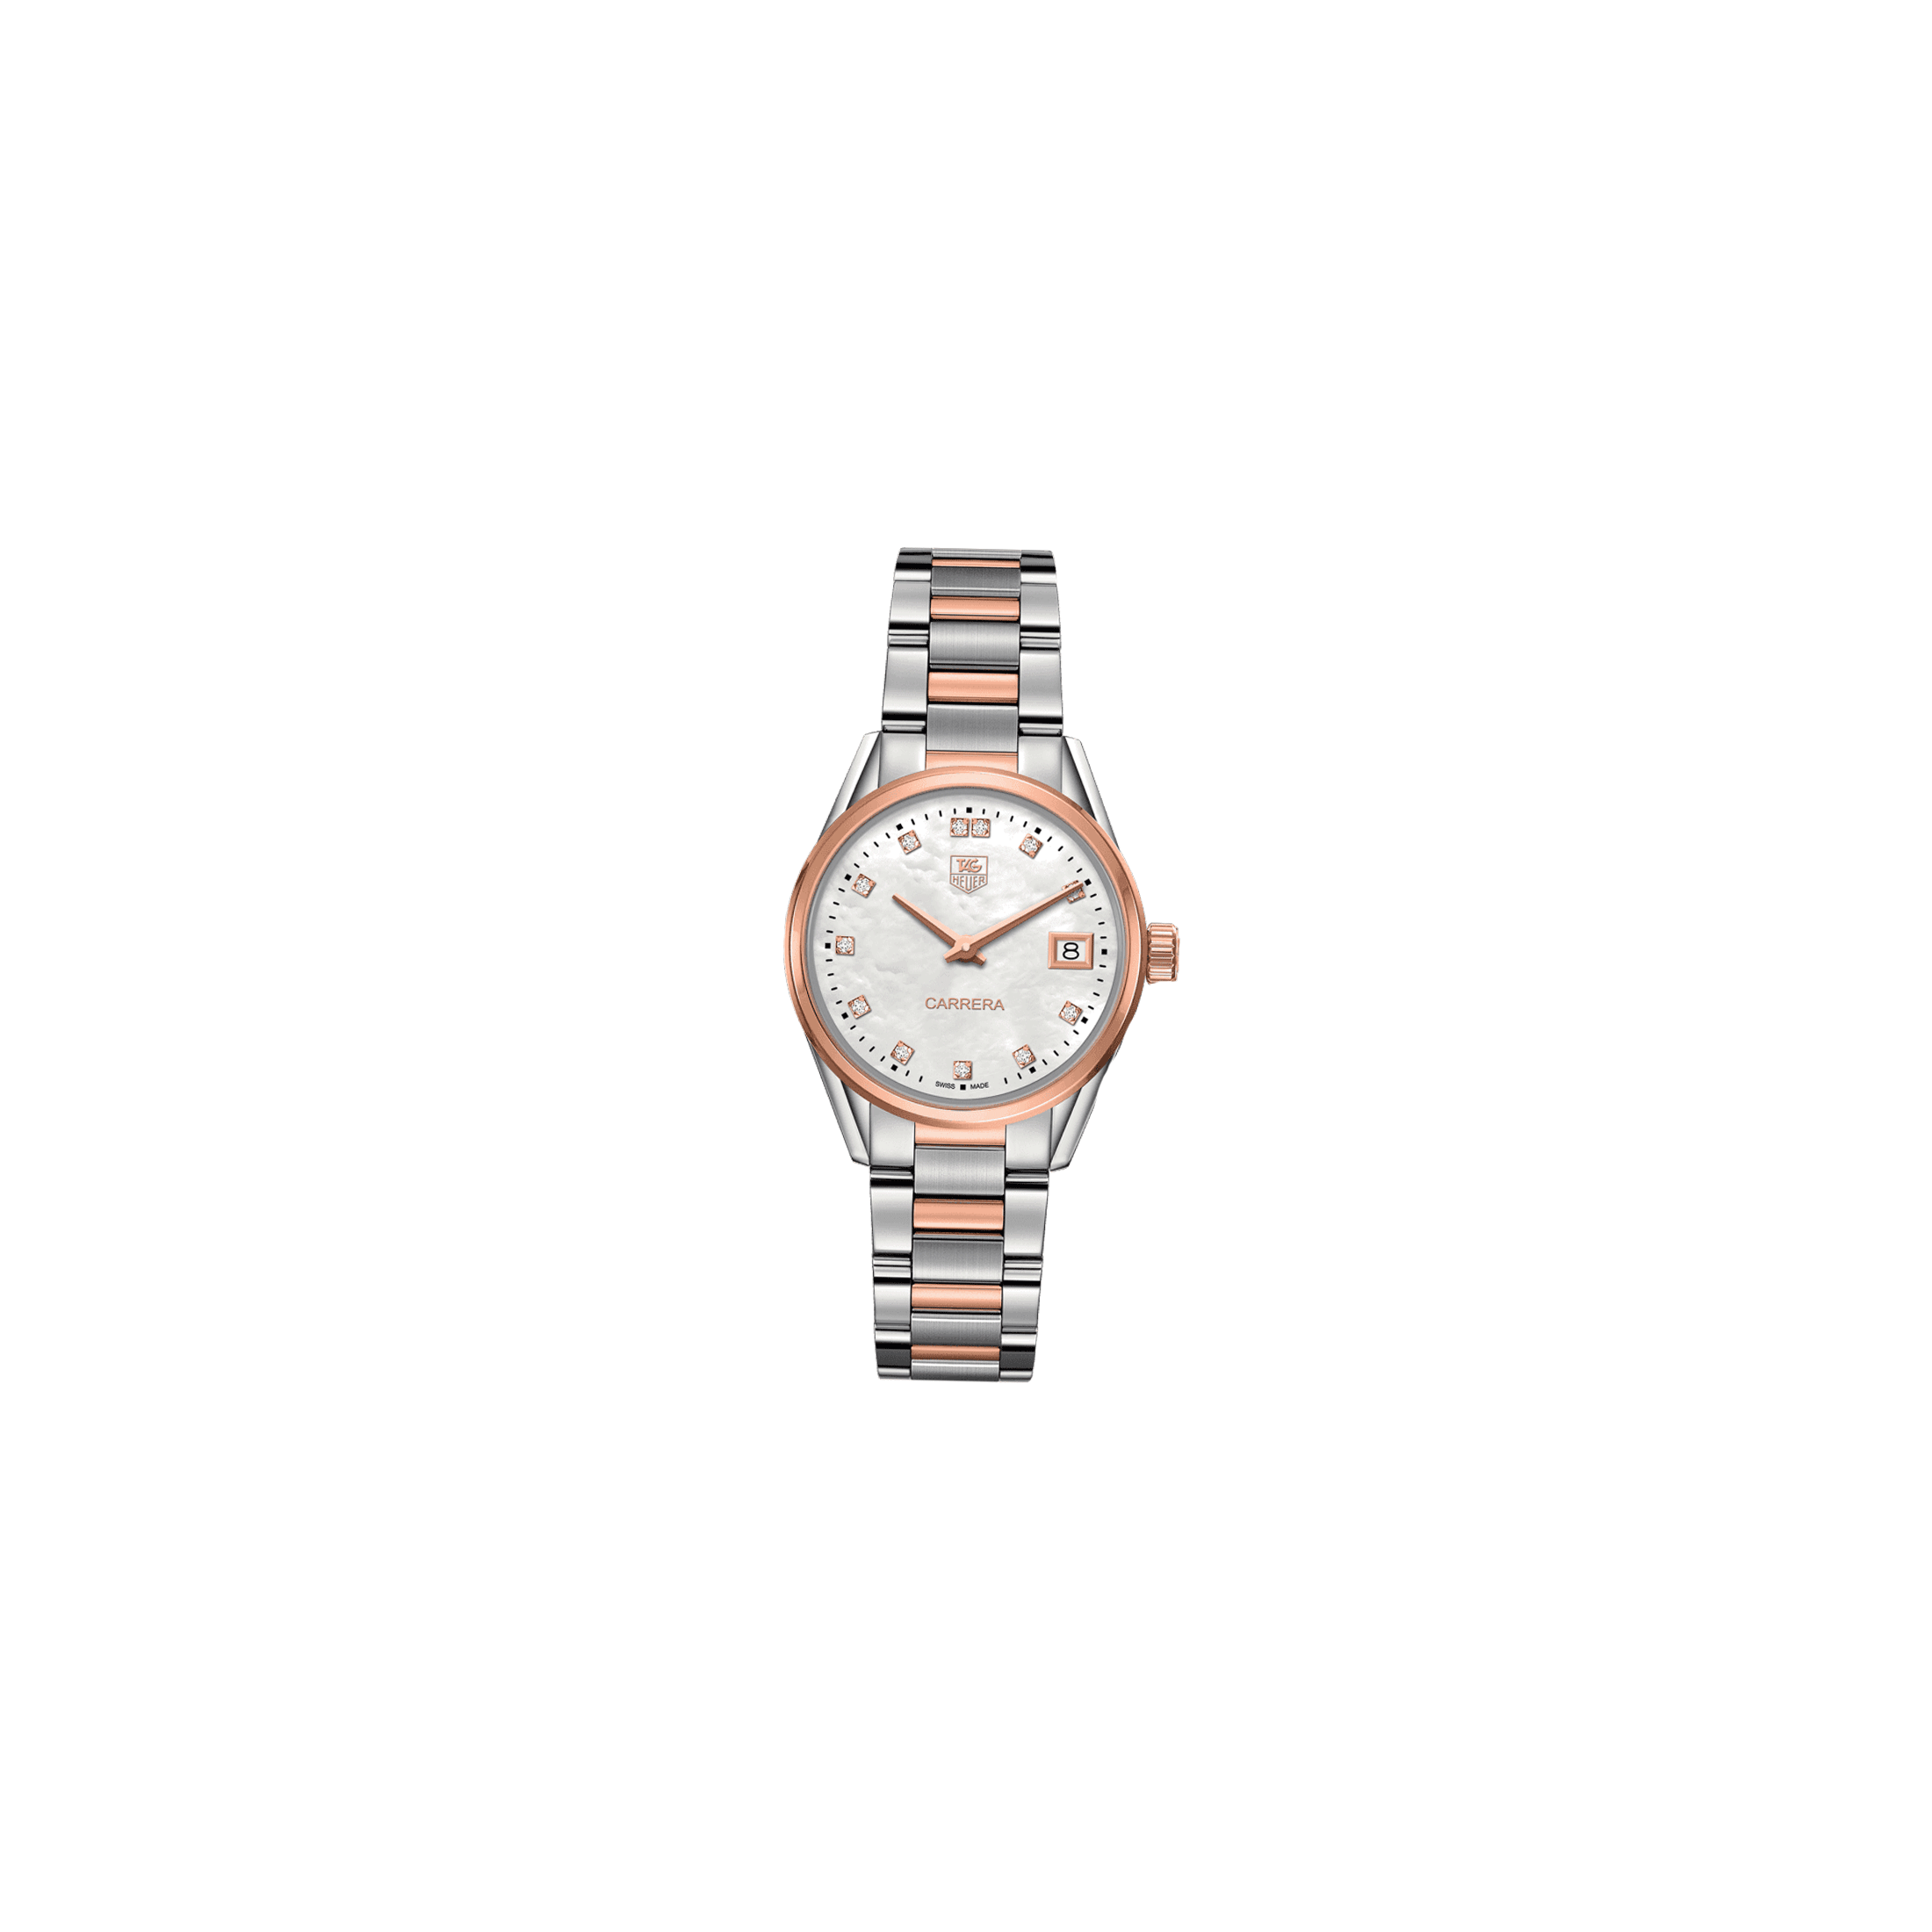 Montre TAG Heuer Carrera Lady quartz cadran nacre blanche index diamants 32 mm - SOLDAT PL